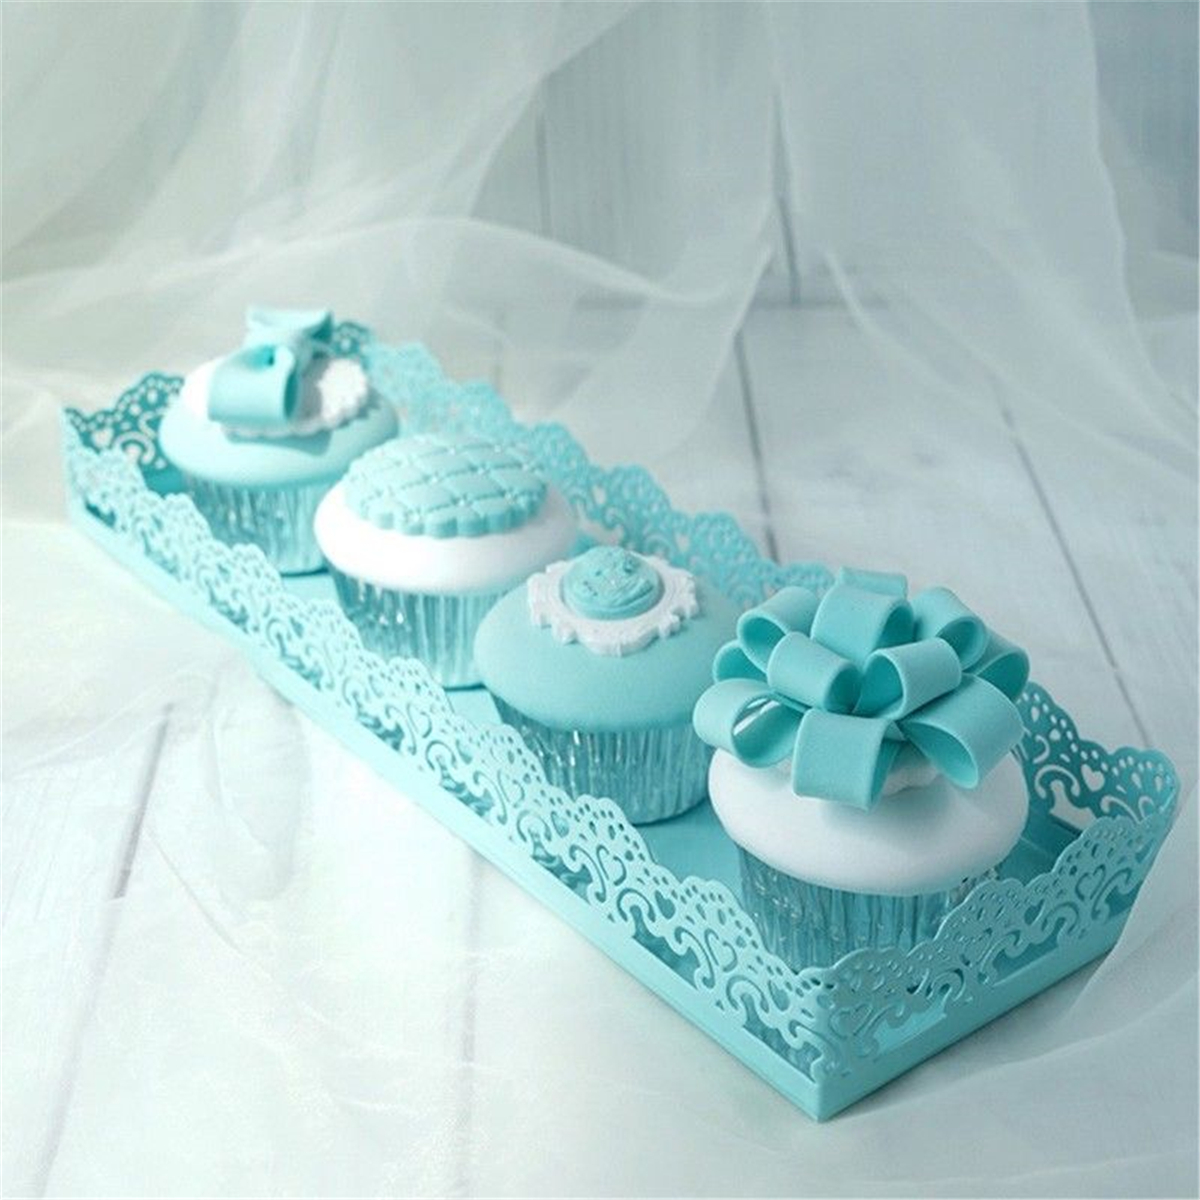 Rectangle Cake Stand Dessert Pastry Tray Wedding Banquet Cupcake Stands Holder Display